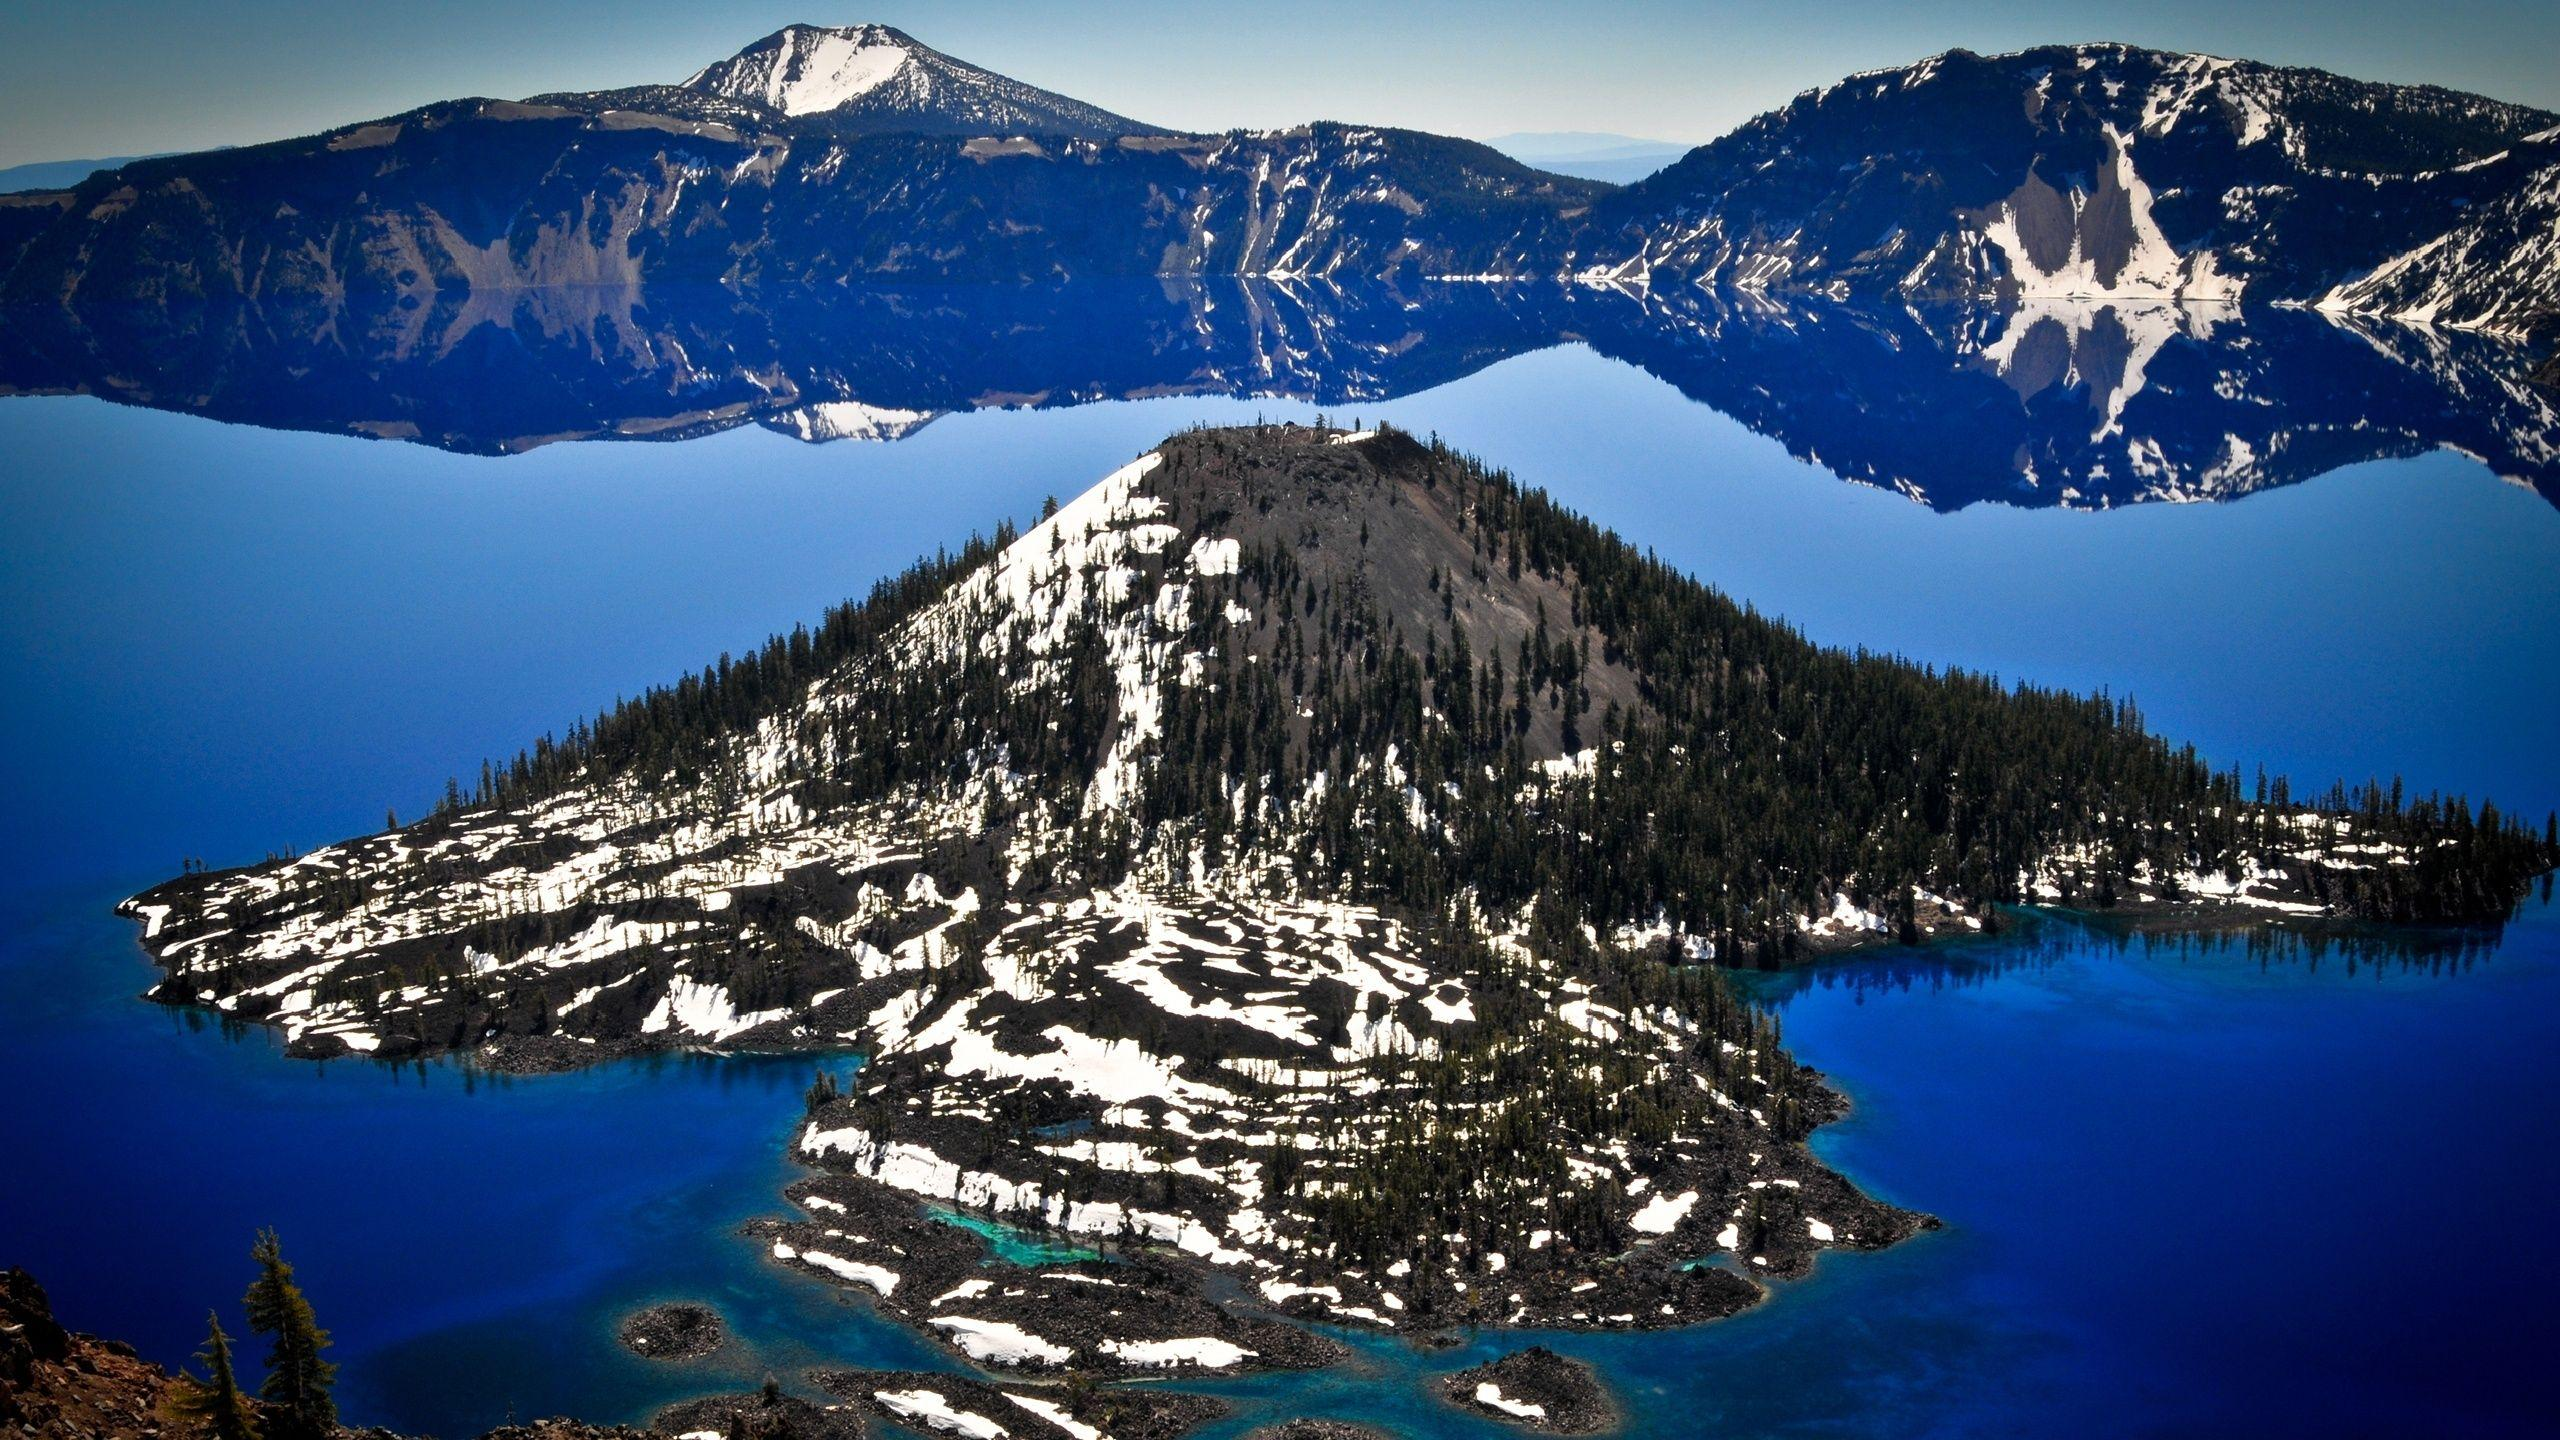 Crater Lake National Park Wallpapers - 2560x1440 - 1434341